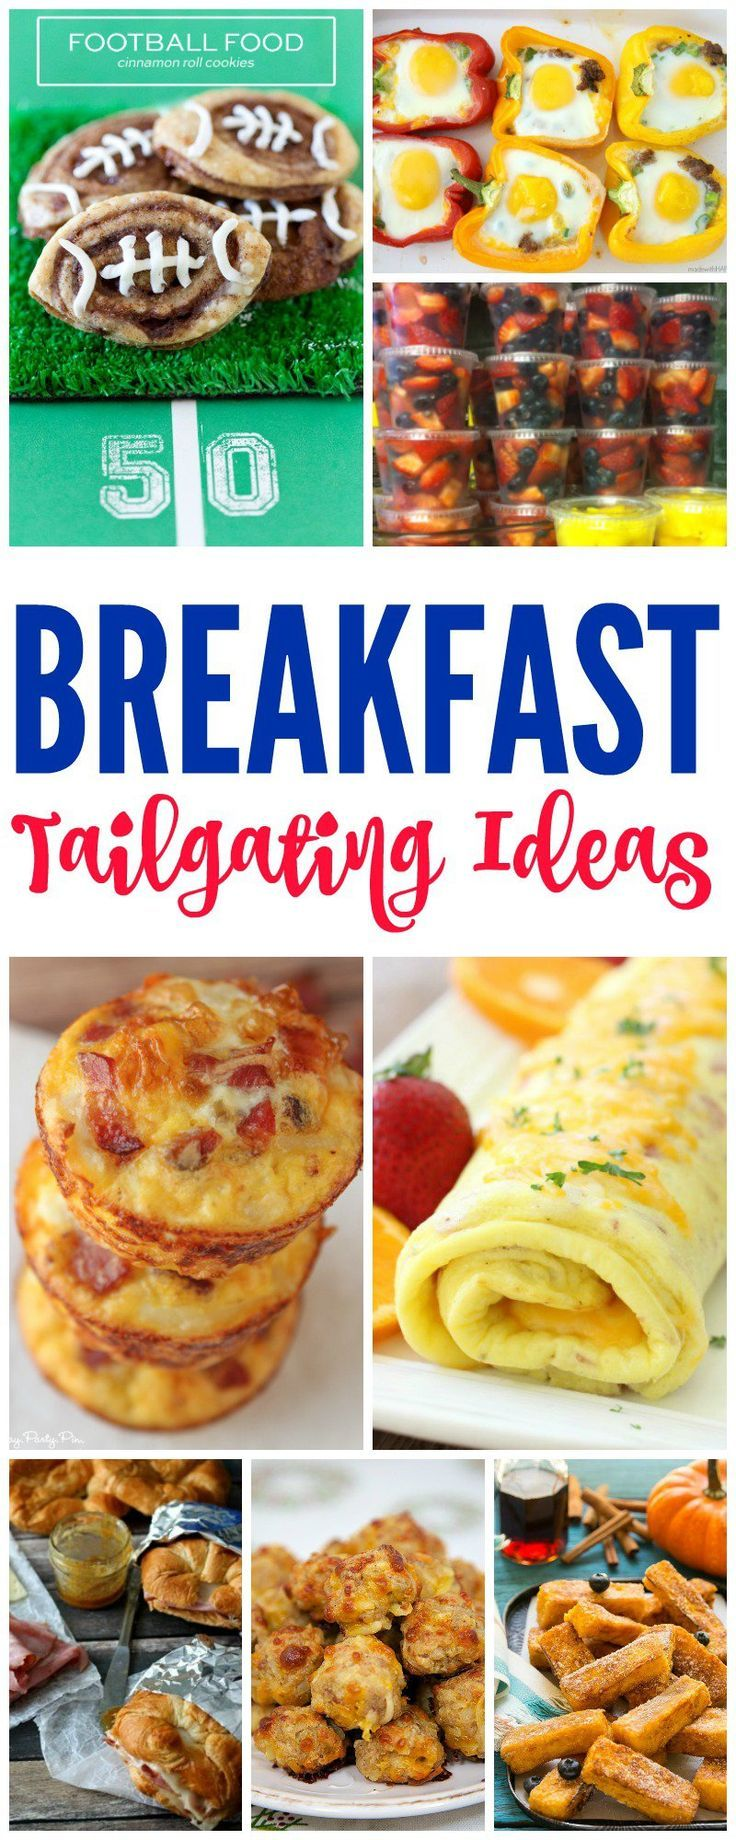 Breakfast Tailgating Recipes for Morning Football Games! Easy go-to recipes for planning for the big game!